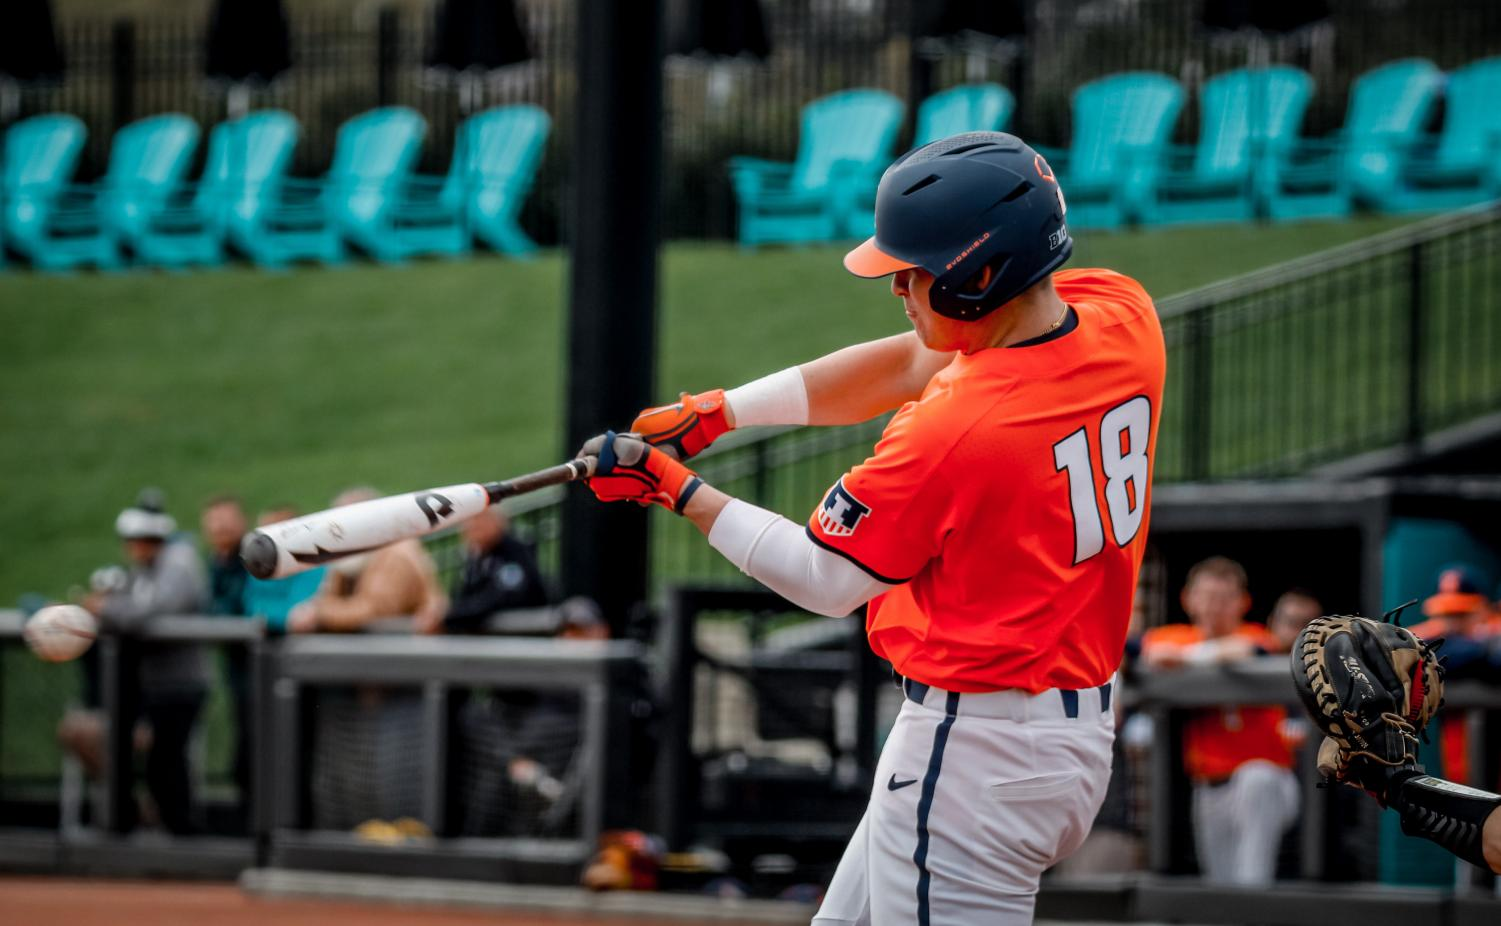 Kellen Sarver swings at a baseball in Illinois' baseball's tournament in Conway, SC over the weekend.